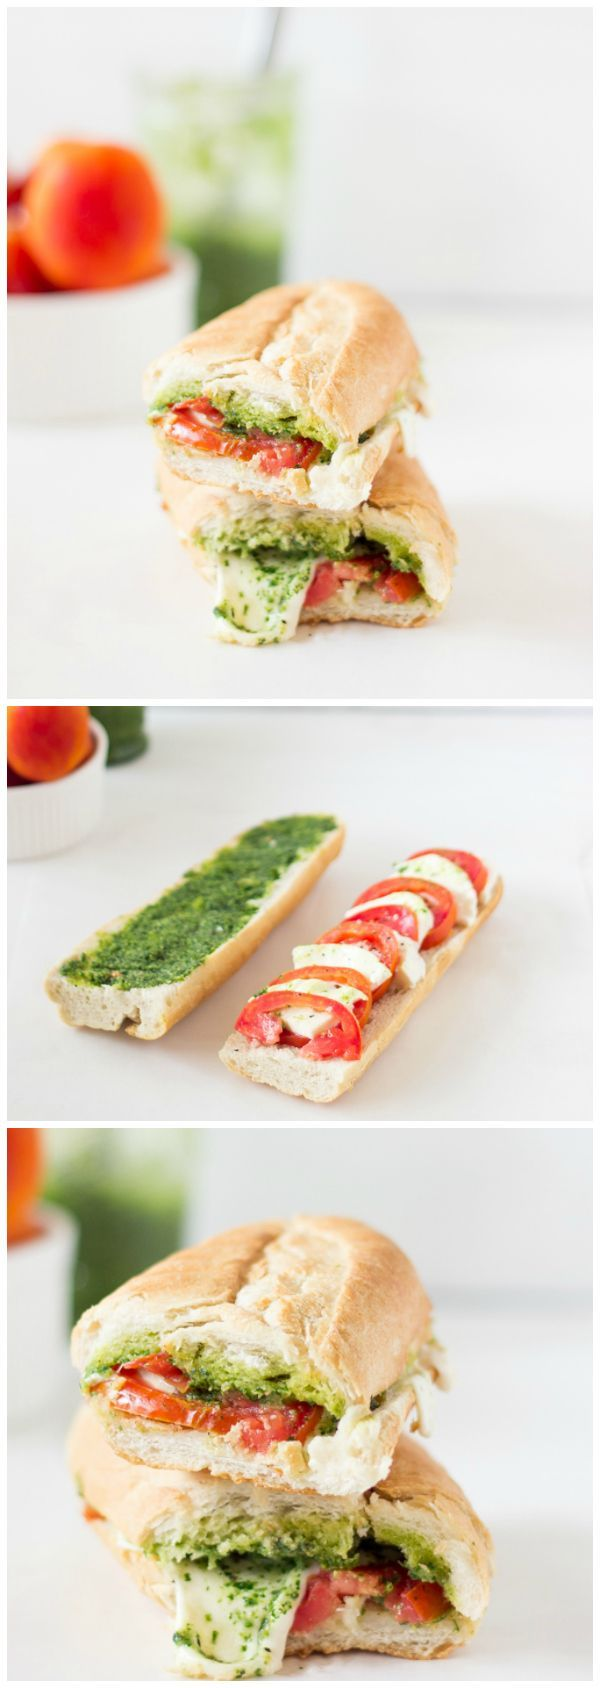 This Caprese Sandwich takes a twist by being toasted with melted mozzarella, and creamy parsley pesto. The sandwich is perfect for an everyday lunch or a picnic!